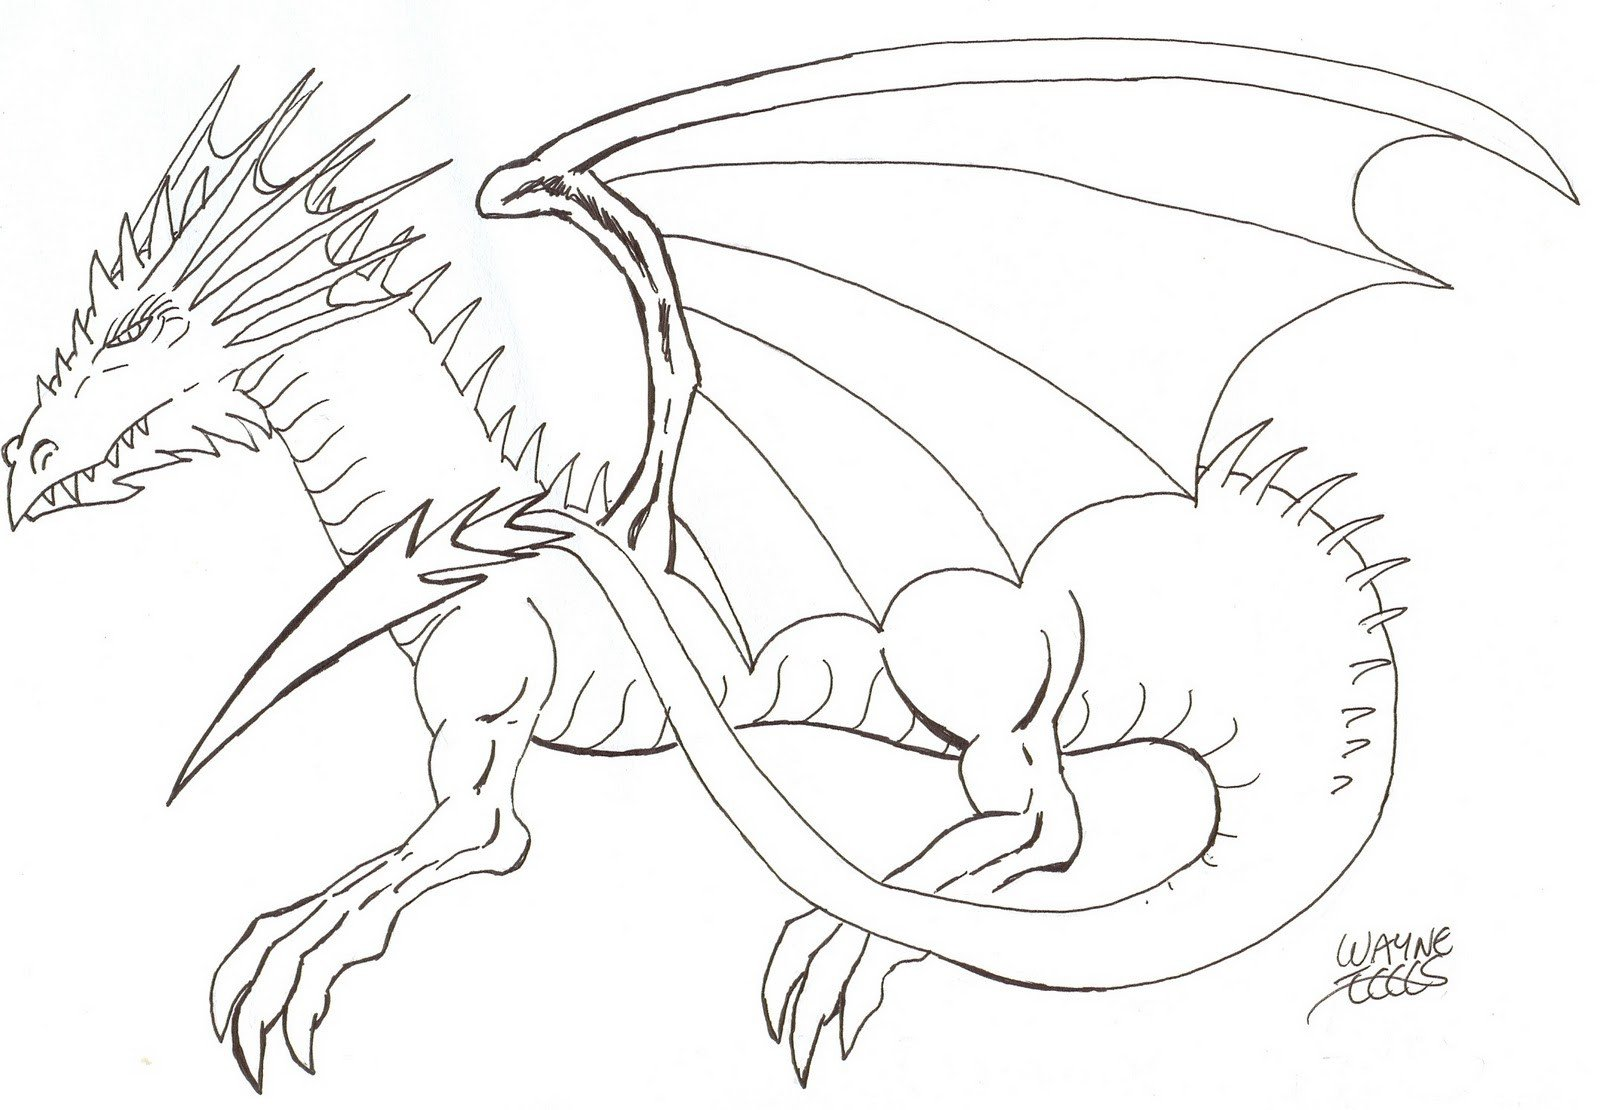 Dragon Tracing Pictures Wayne Tully Horror Art How to Draw A Dragon